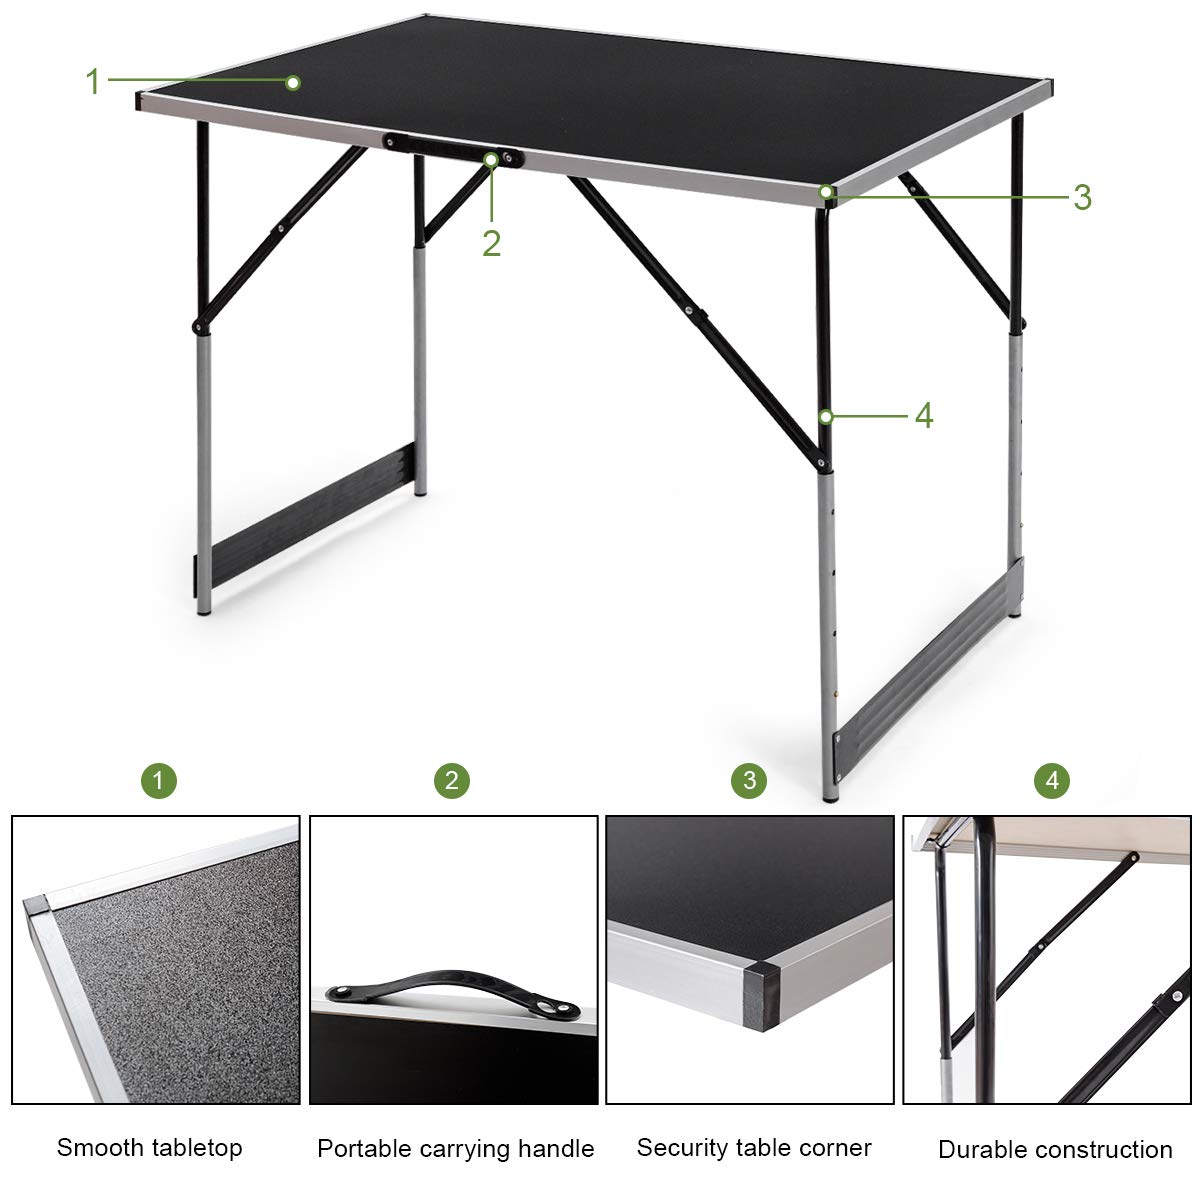 3 Pieces Height Adjustable Patio Garden Outdoor Beach BBQ Camp Portable Table Easy Clean Table Top Collapsible Camping Tables Giantex Camping Folding Picnic Table Aluminum Set